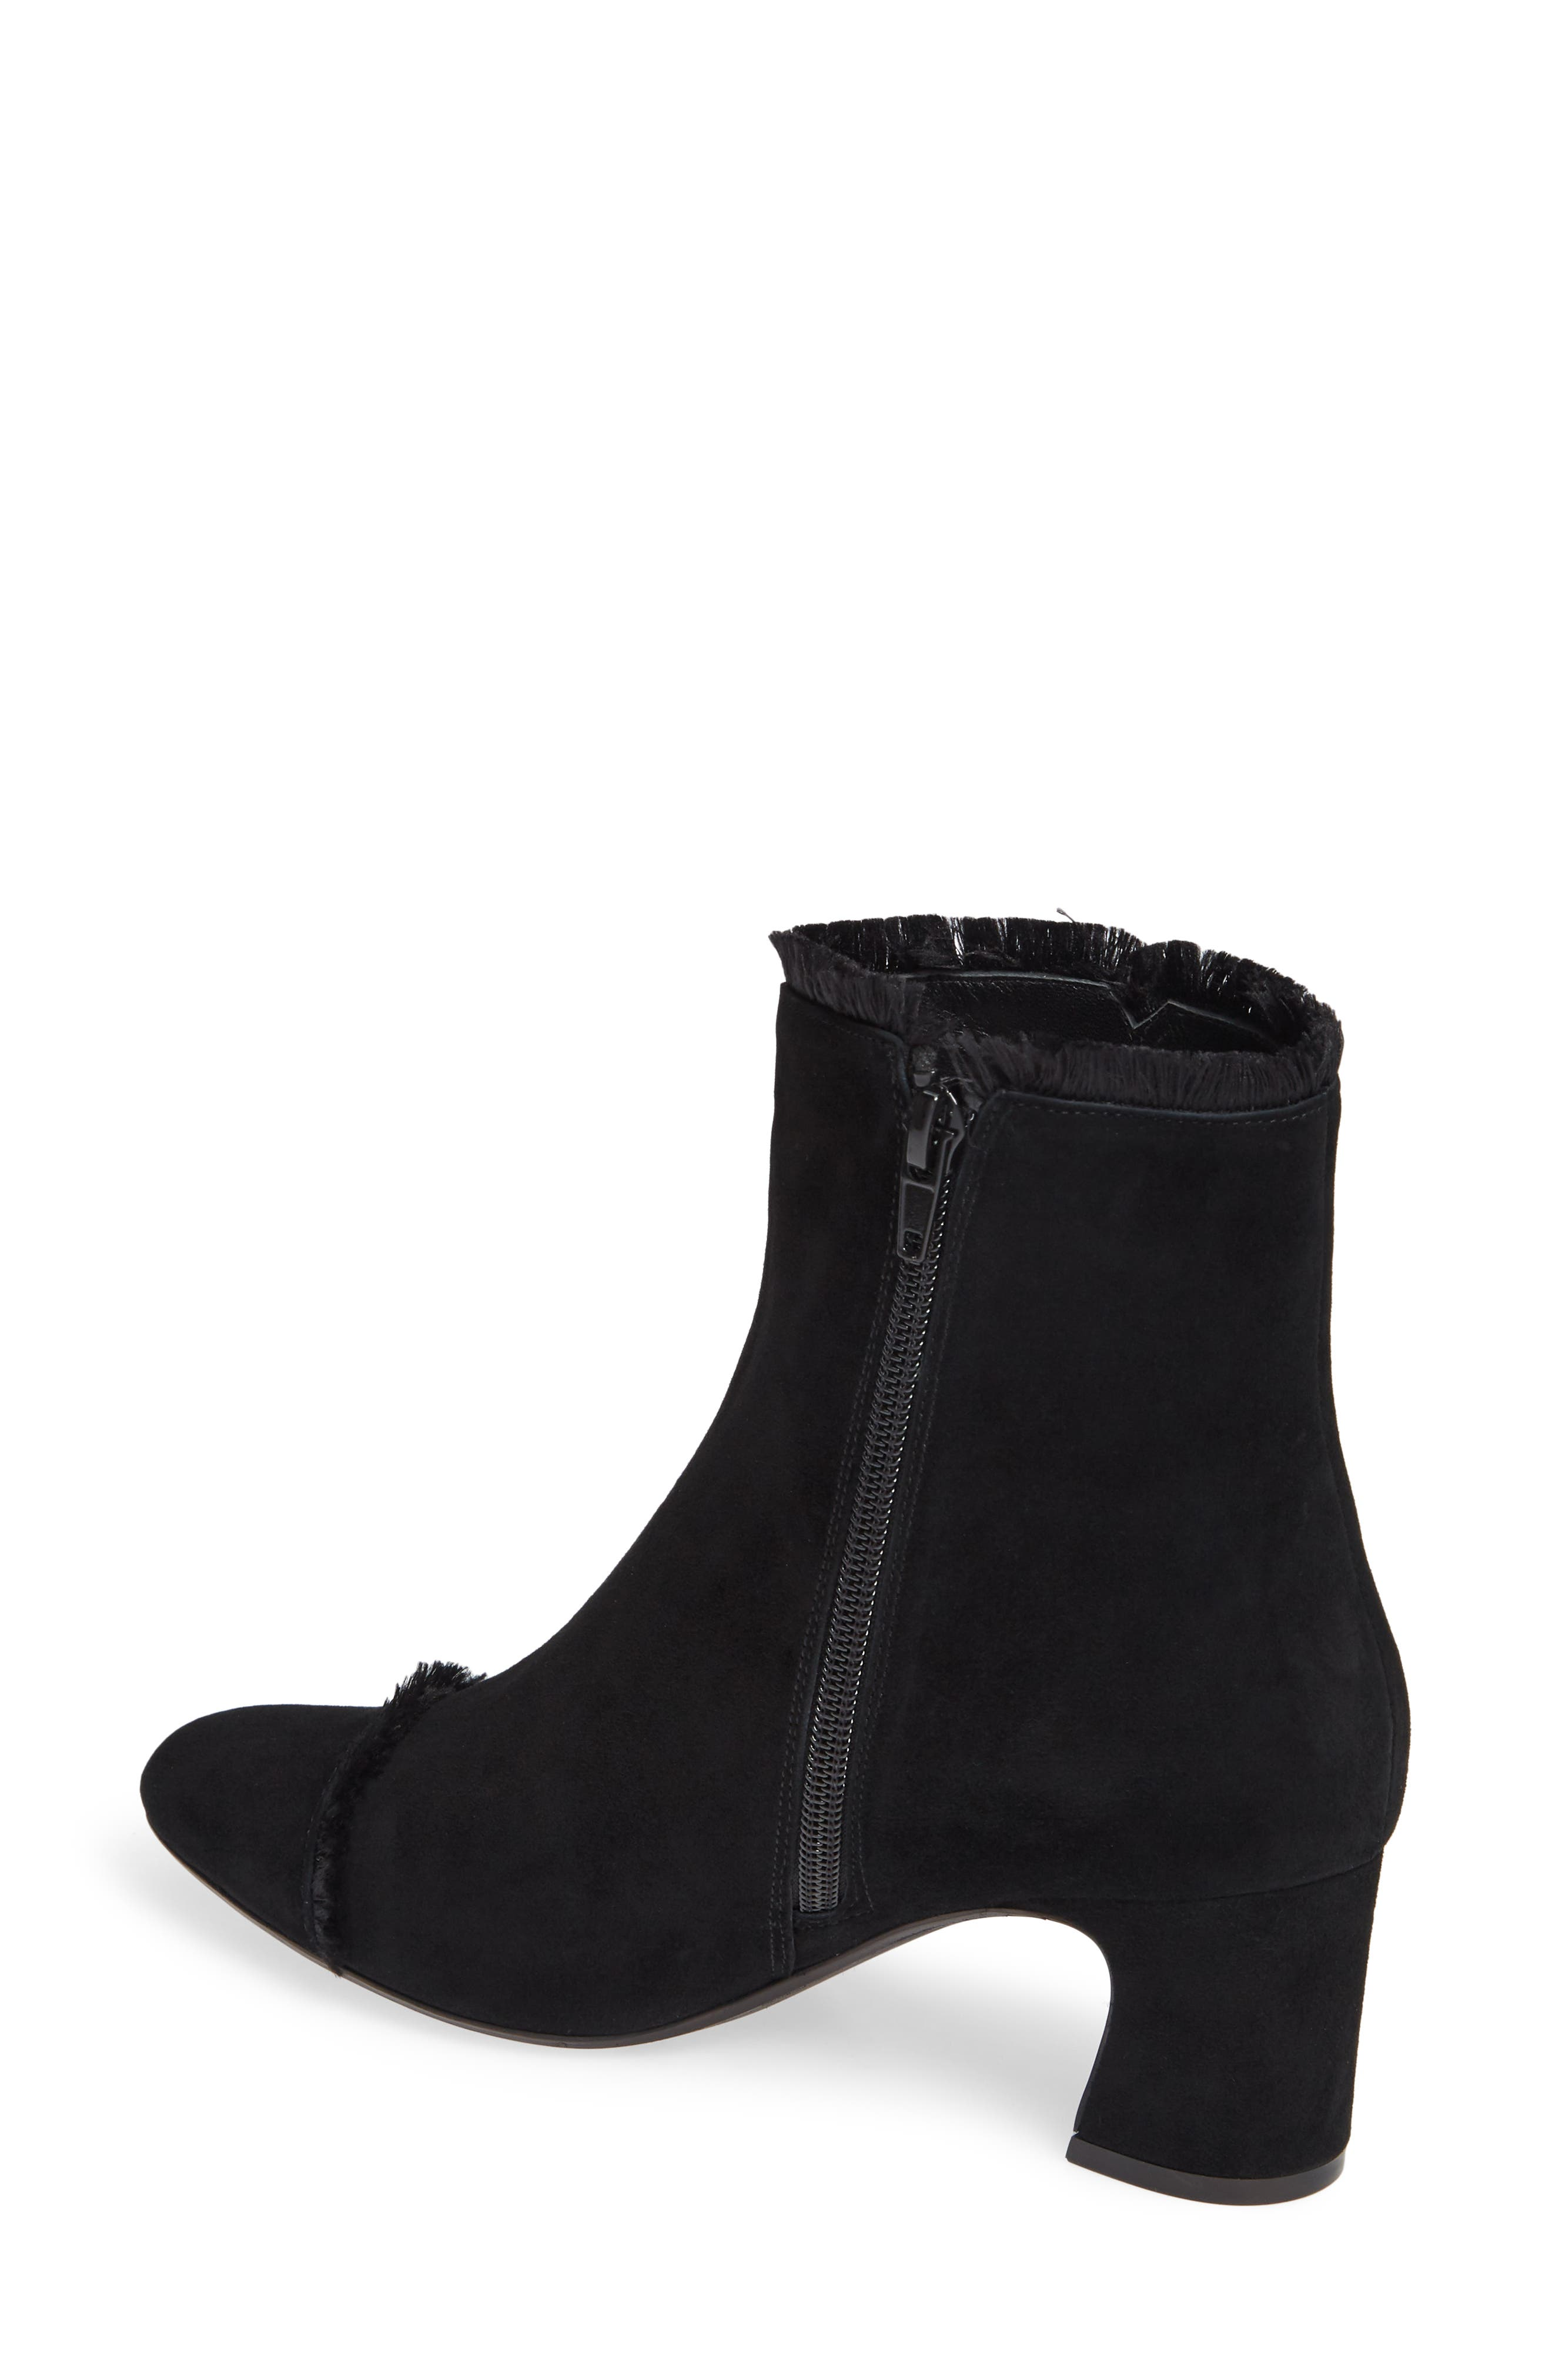 Danzing Fringe Bootie,                             Alternate thumbnail 2, color,                             BLACK SUEDE